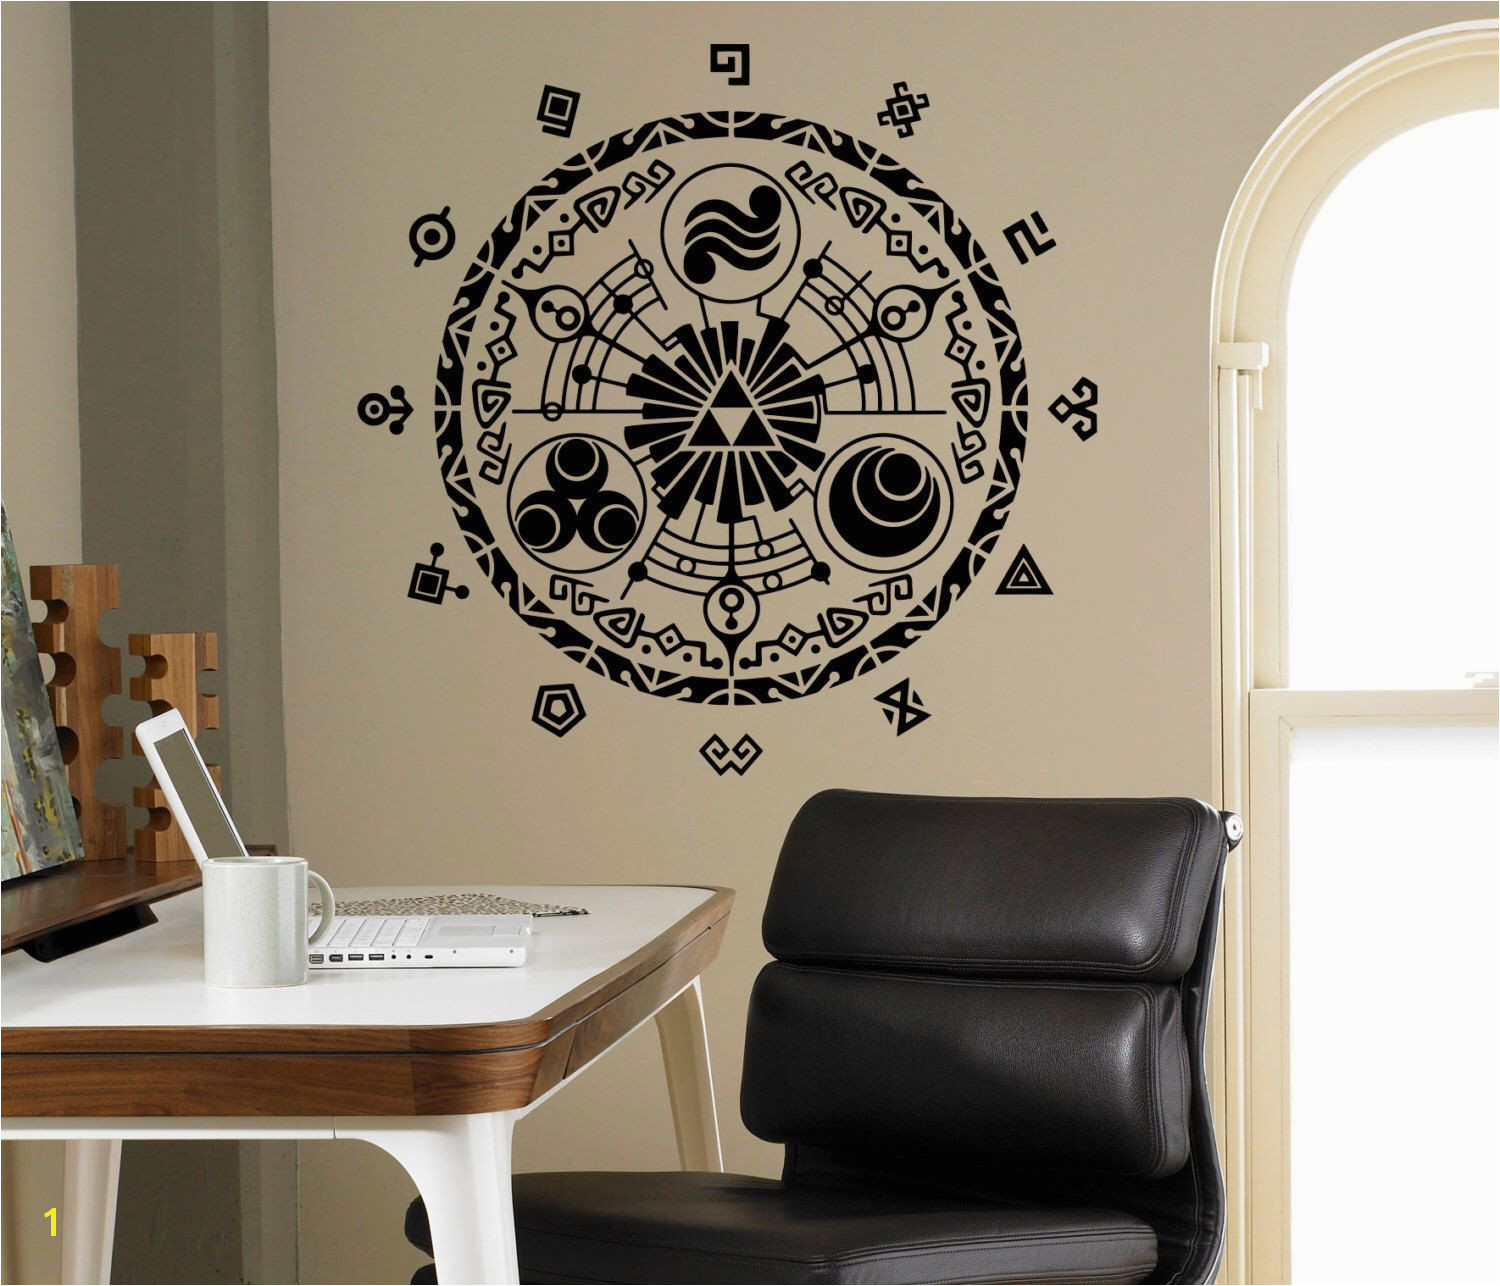 Legend of Zelda Wall Vinyl Decal Gate Time Wall Sticker Home Interior Bedroom Decor Kids